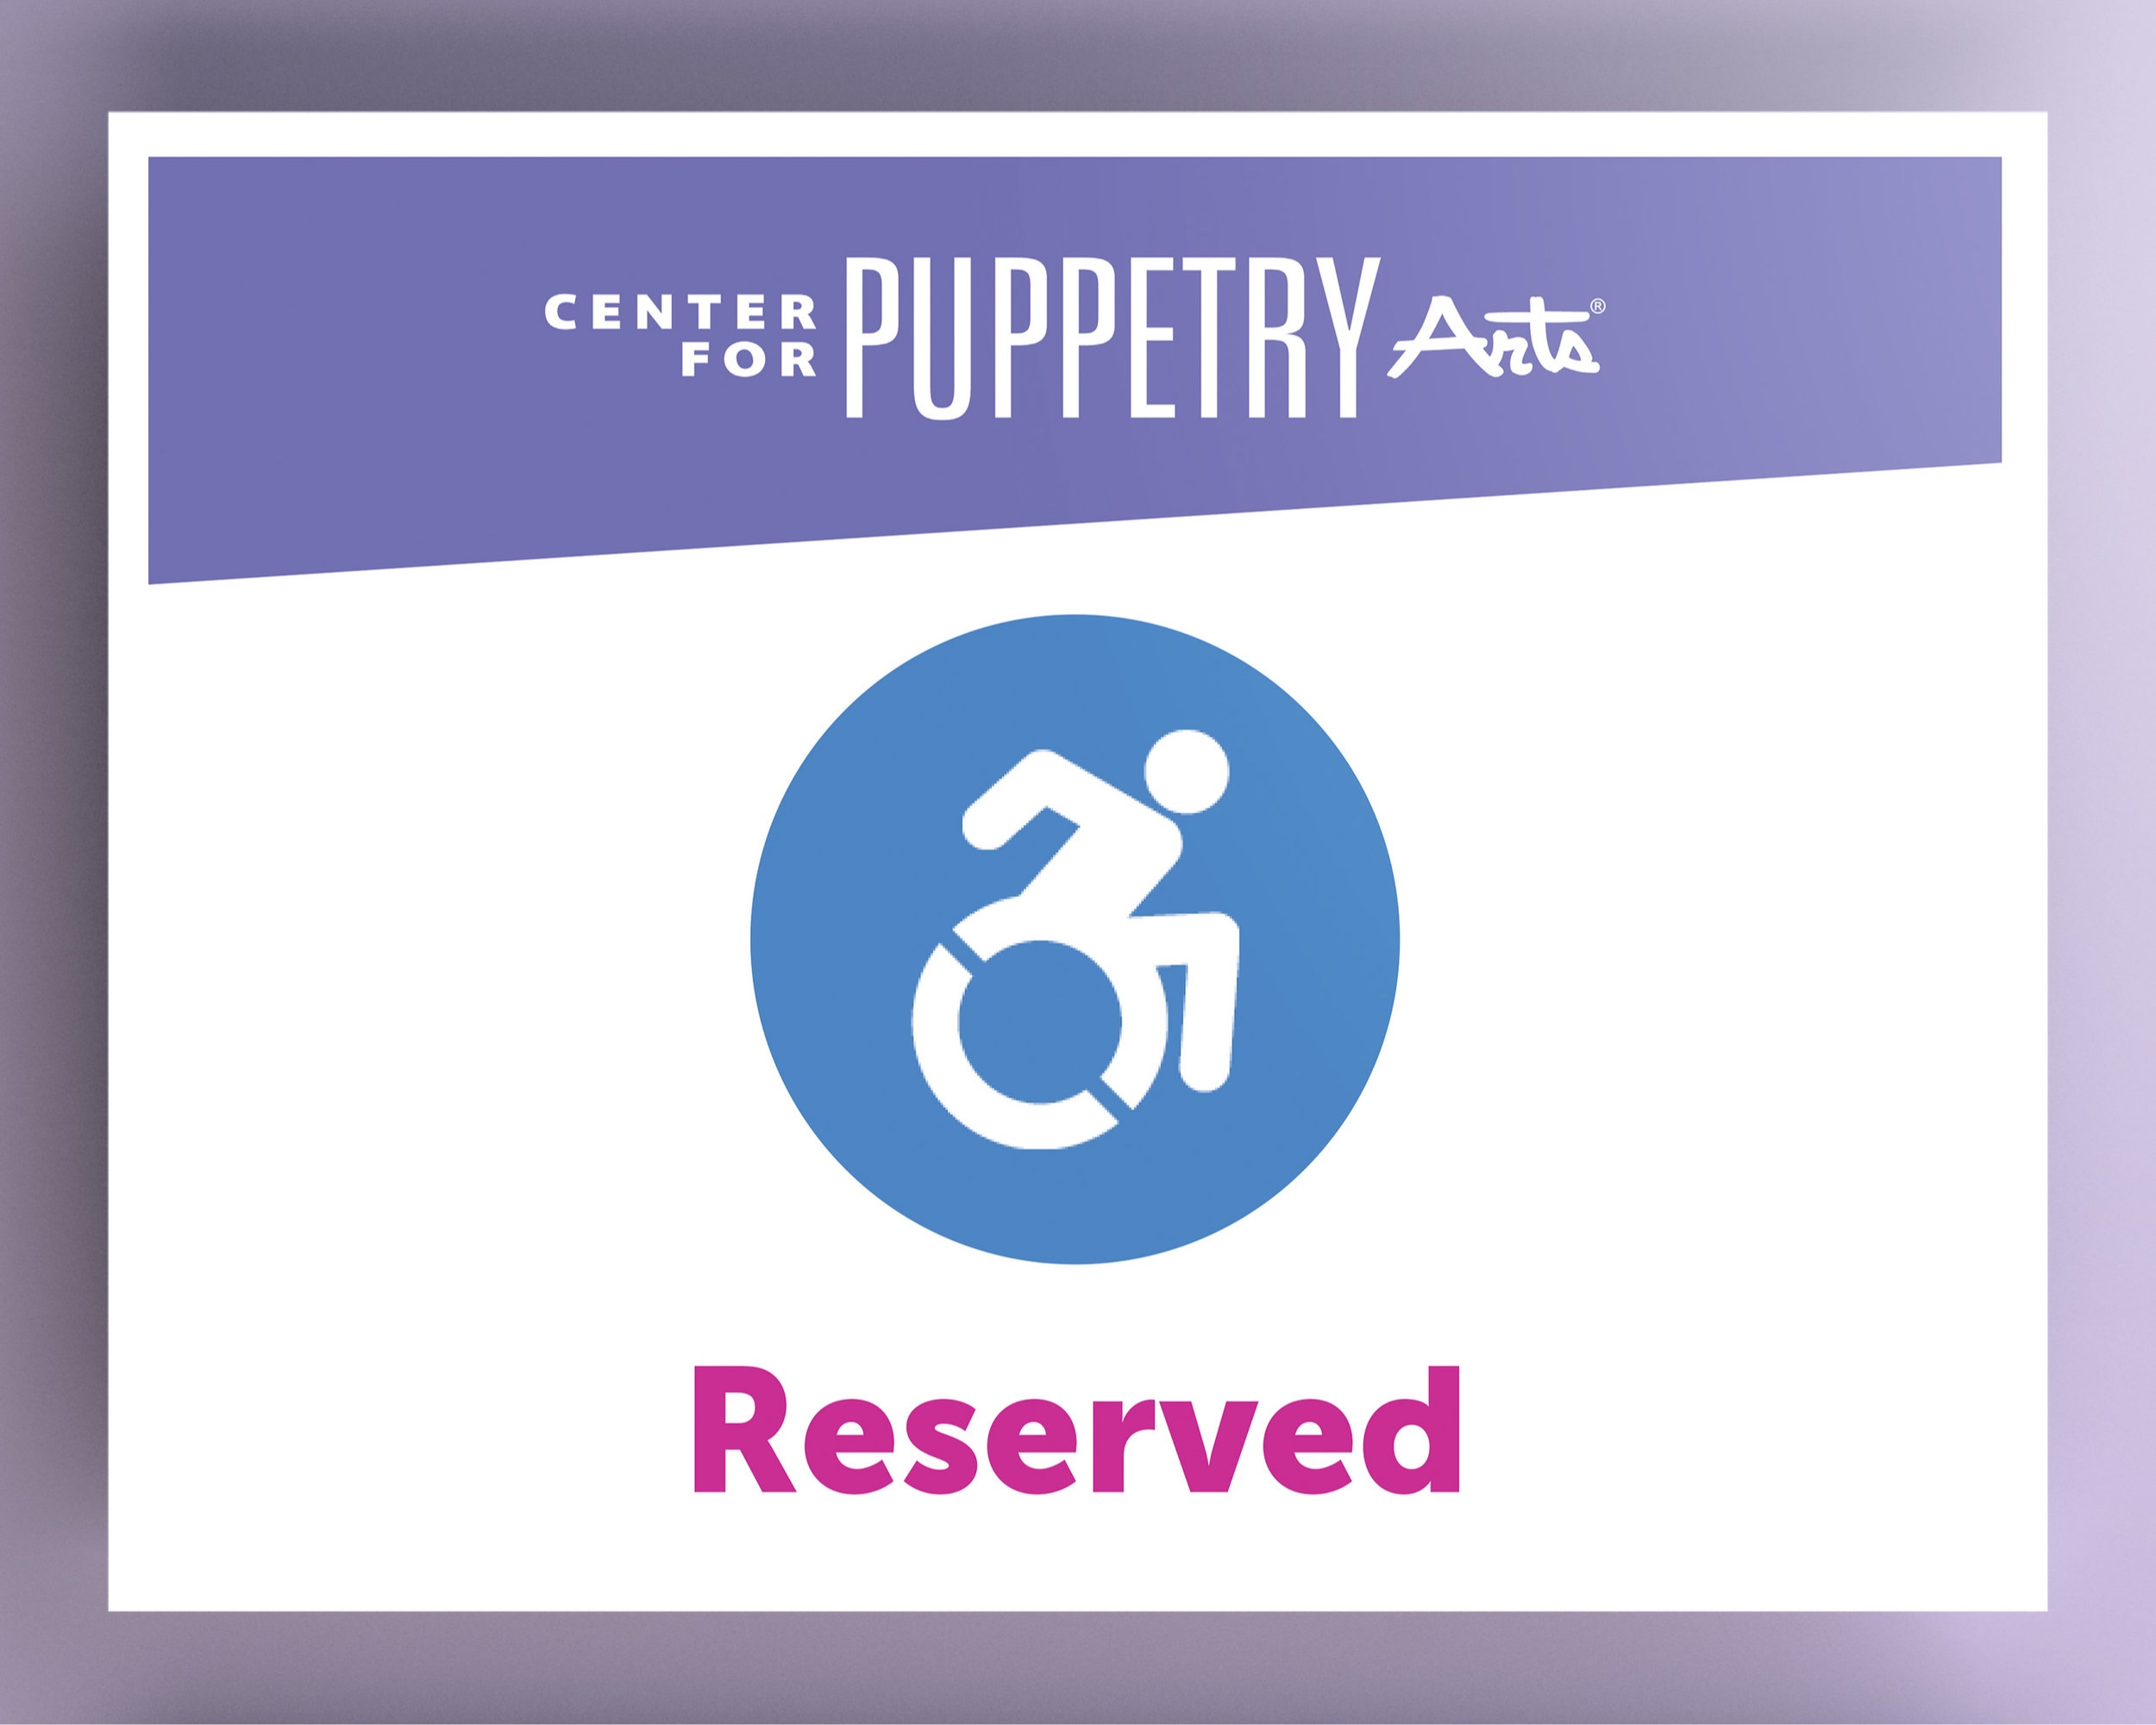 Copyright: Center for Puppetry Arts